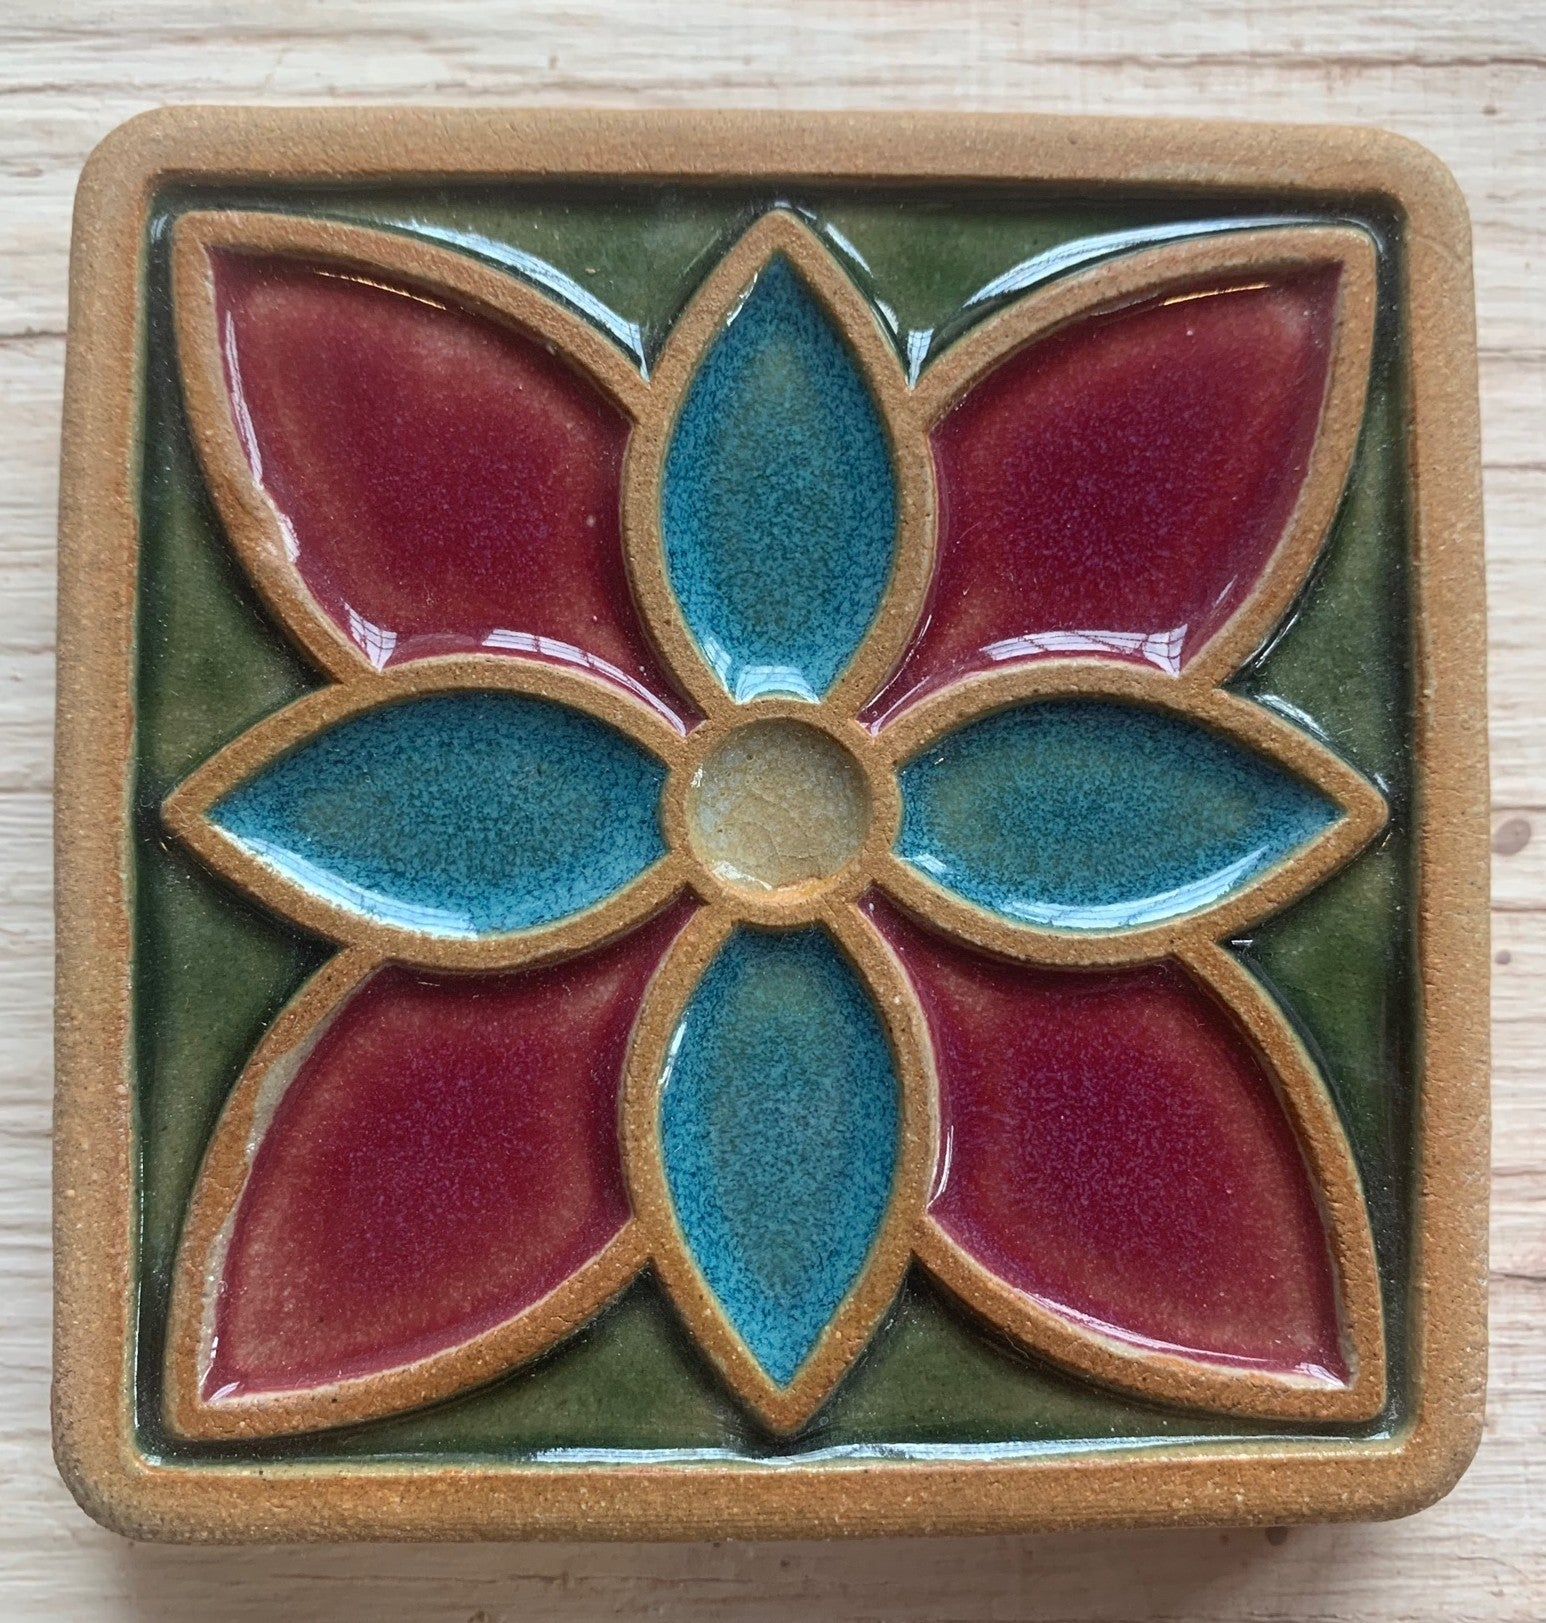 05/15 Ceramic Tile Glazing Workshop with Pewabic Pottery on Friday May 15 at 6pm